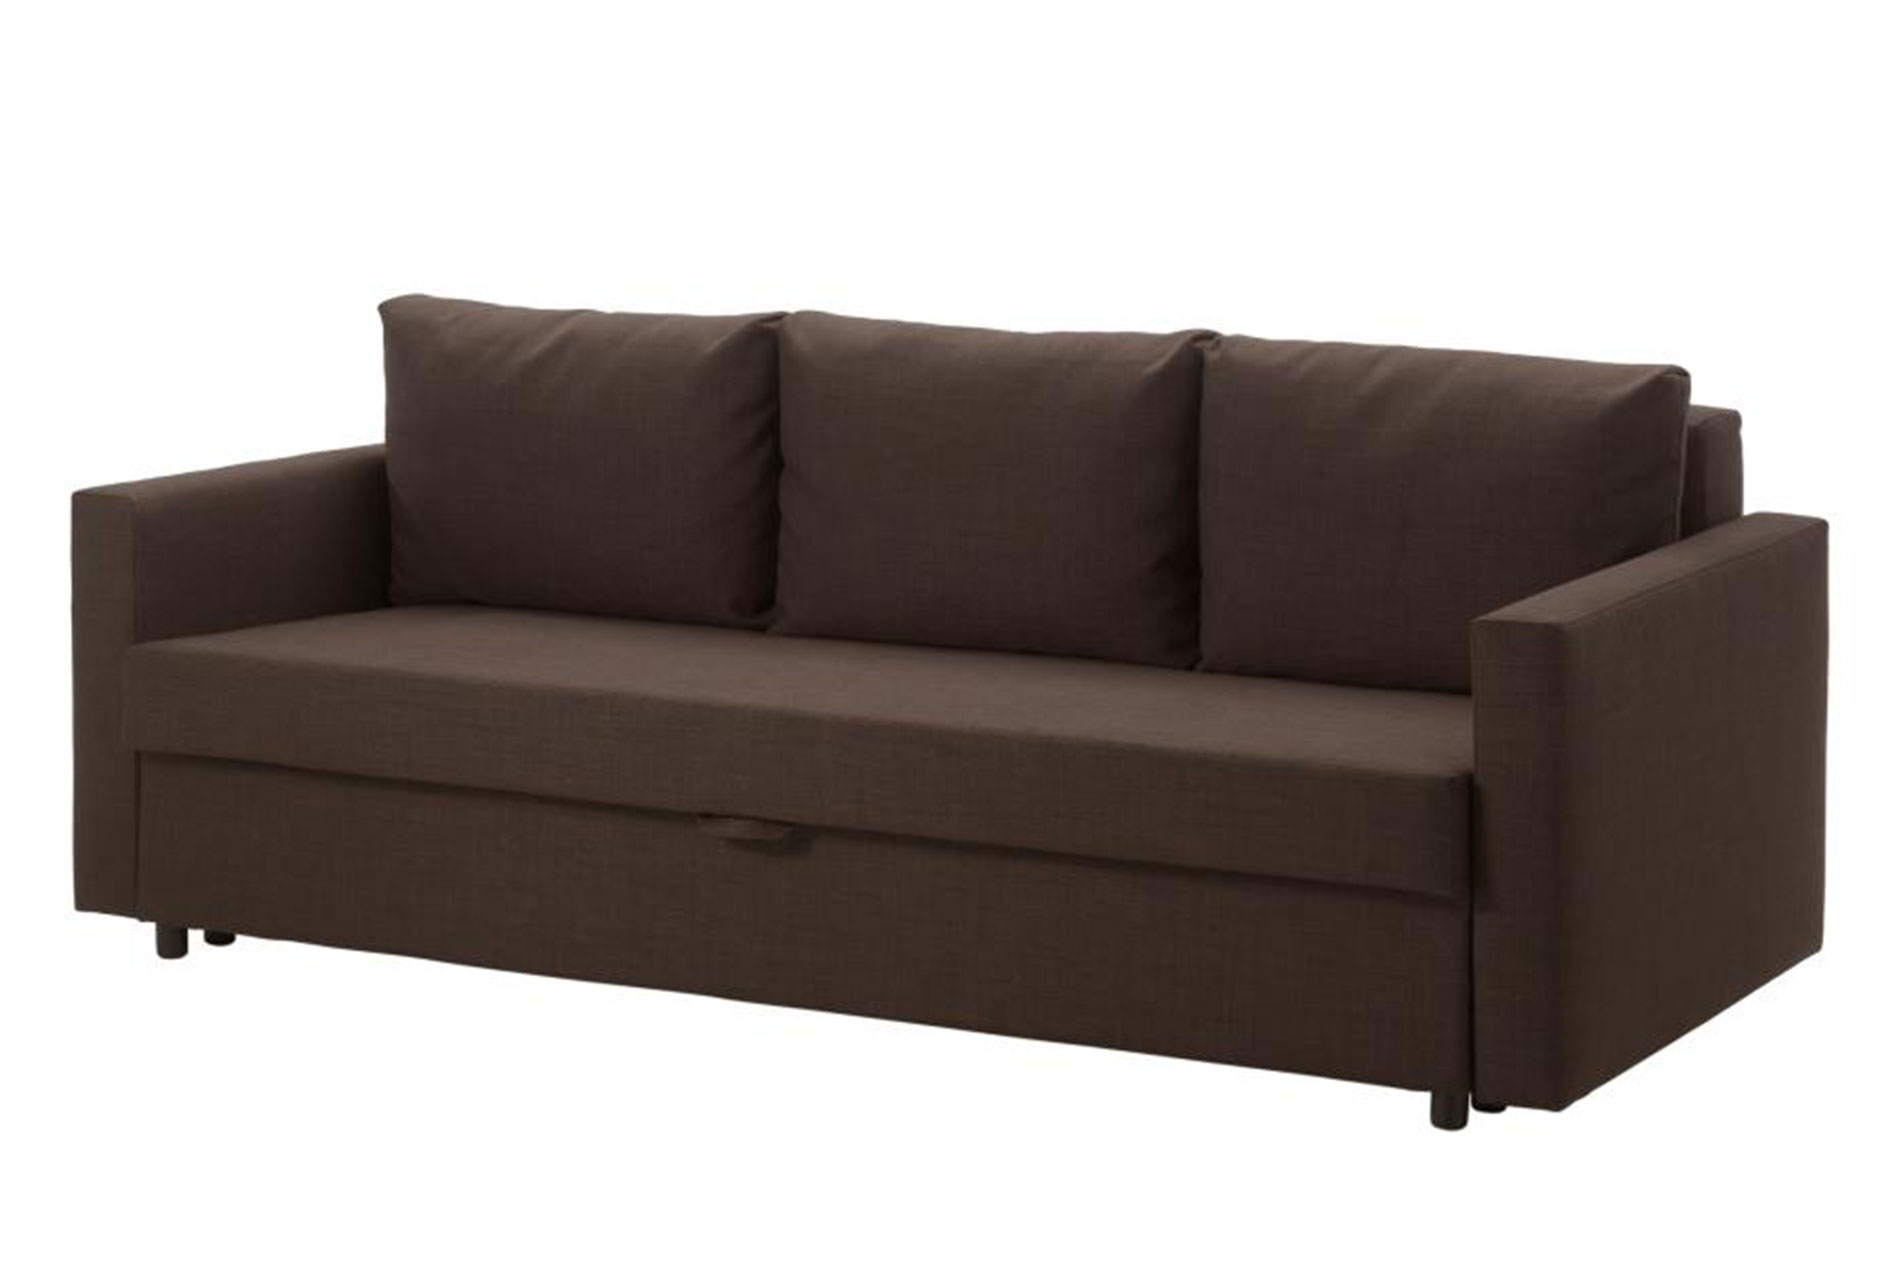 3 Canaps Convertibles IKEA Pas Cher Solsta Exarby Et